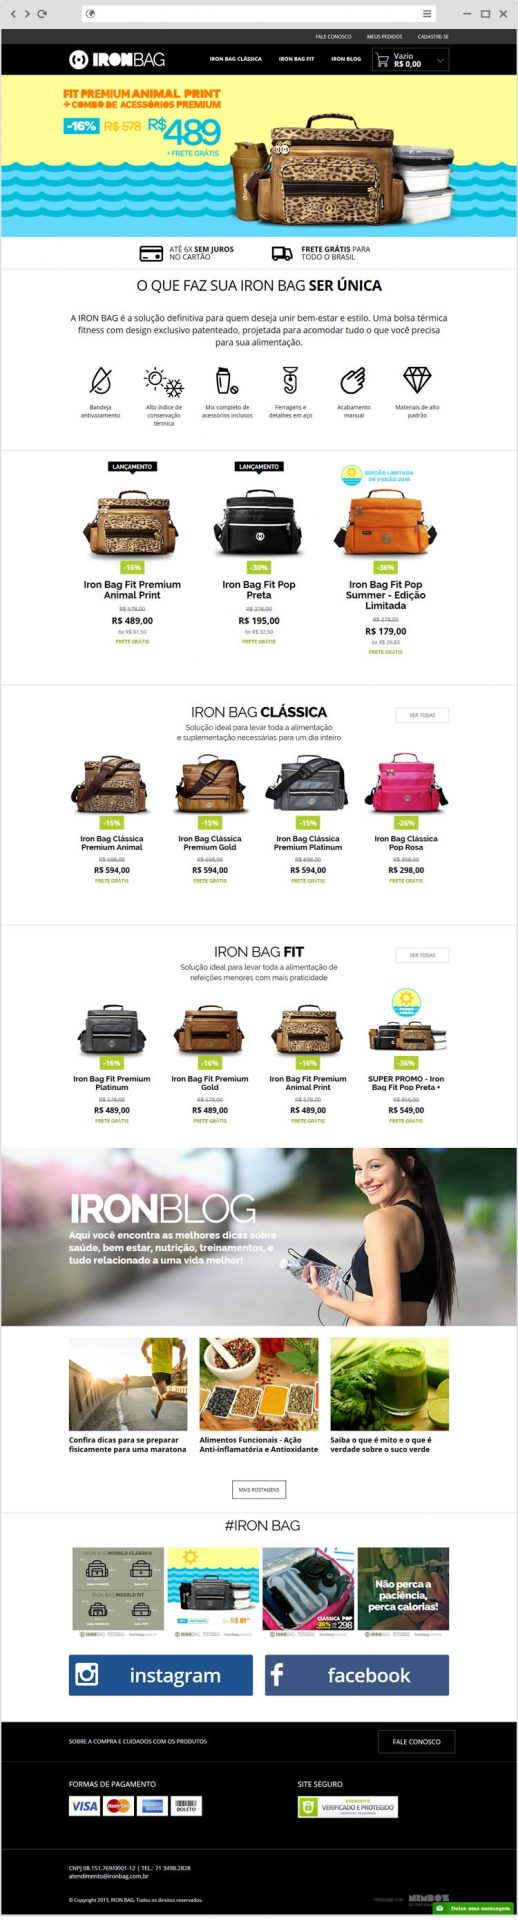 nbz-agencia-digital-portfolio-ecommerce-iron-bag-3